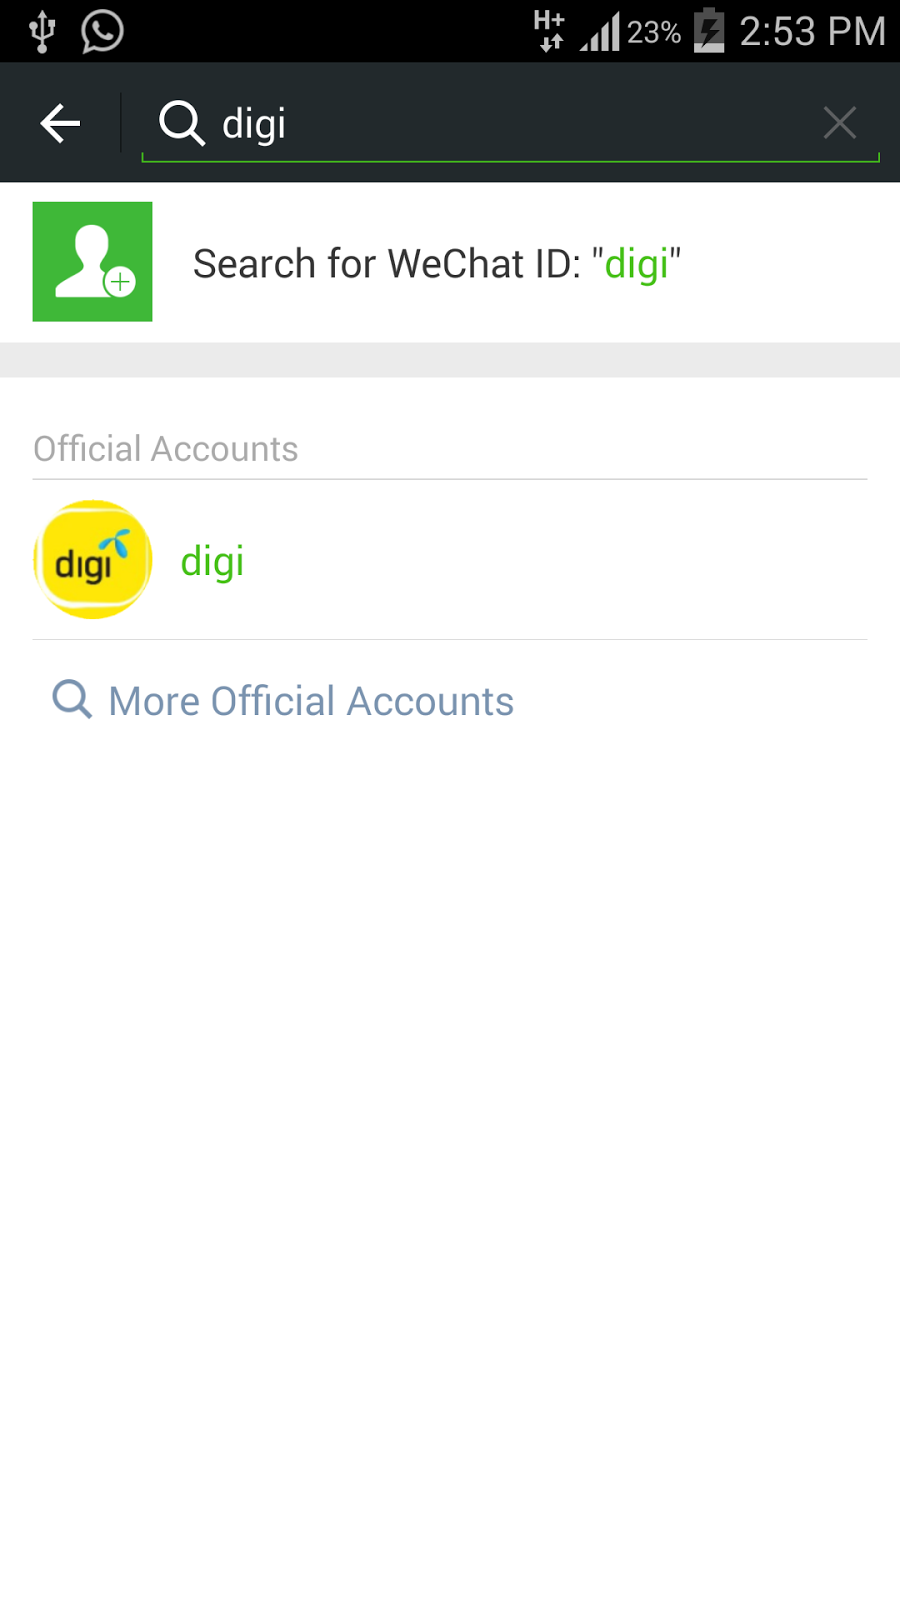 My Little Space 我的天地: How to check remaining DiGi mobile